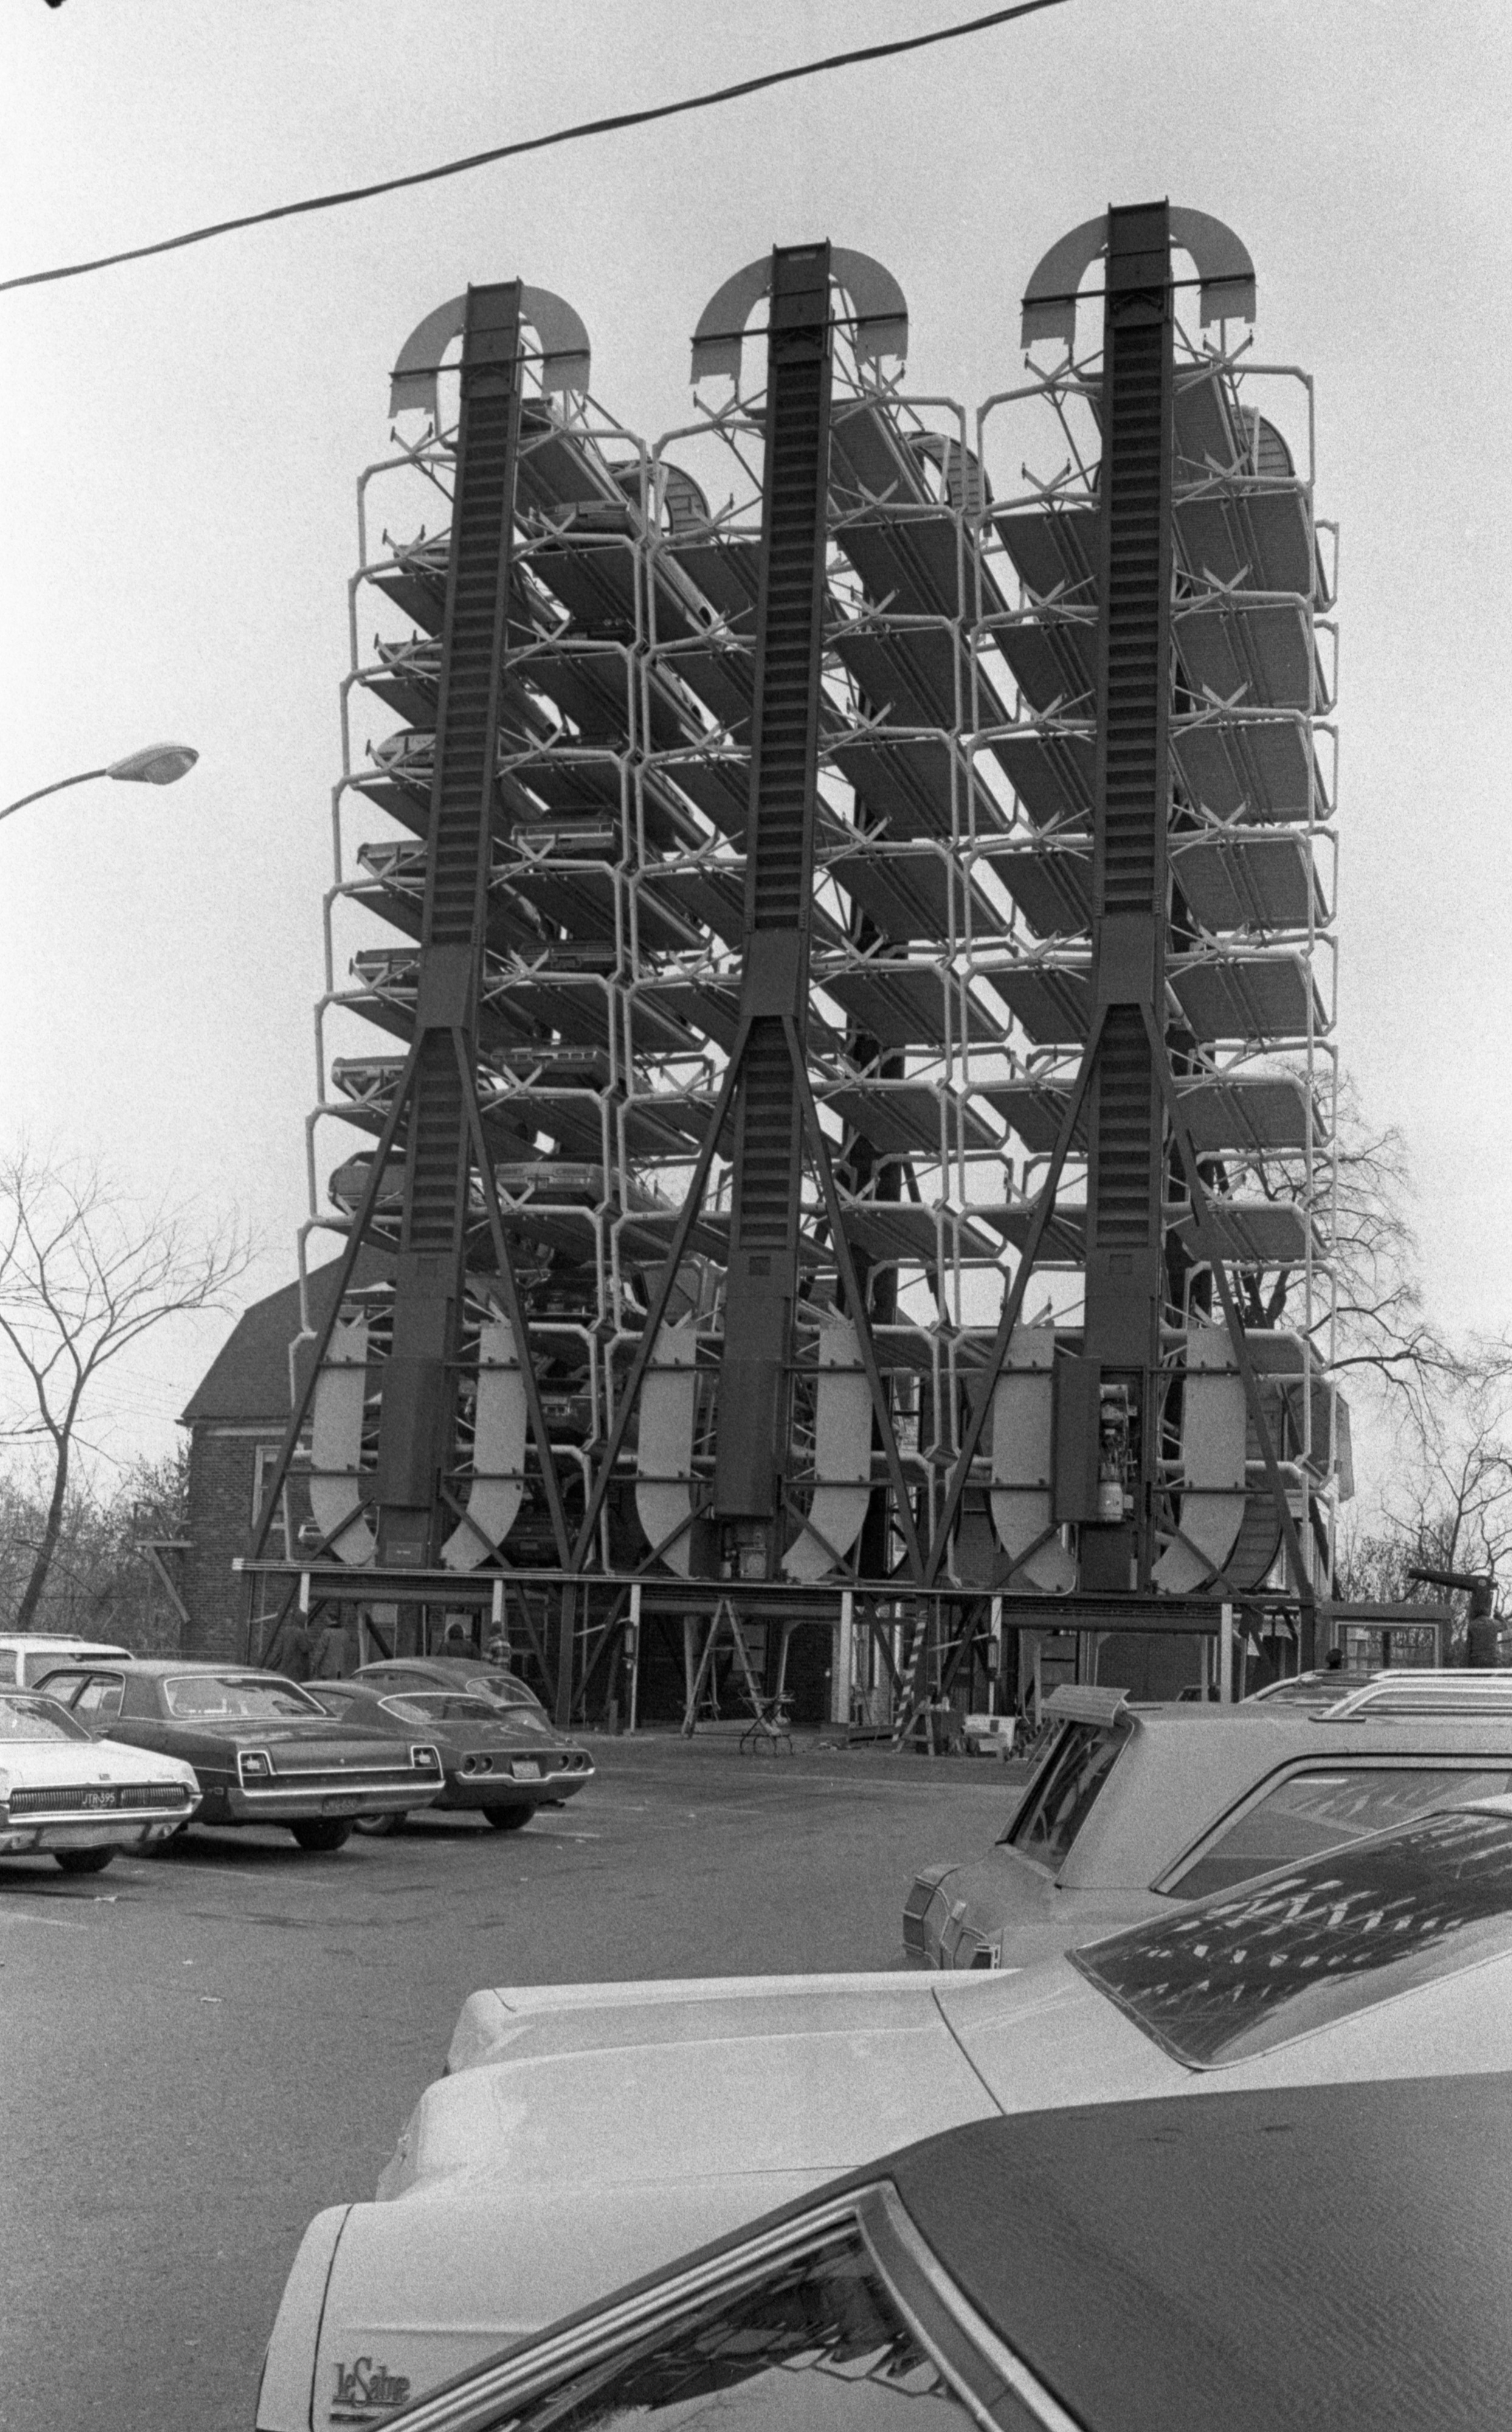 St. Joseph Mercy Hospital's New Park Mobile Structures, November 1973 image